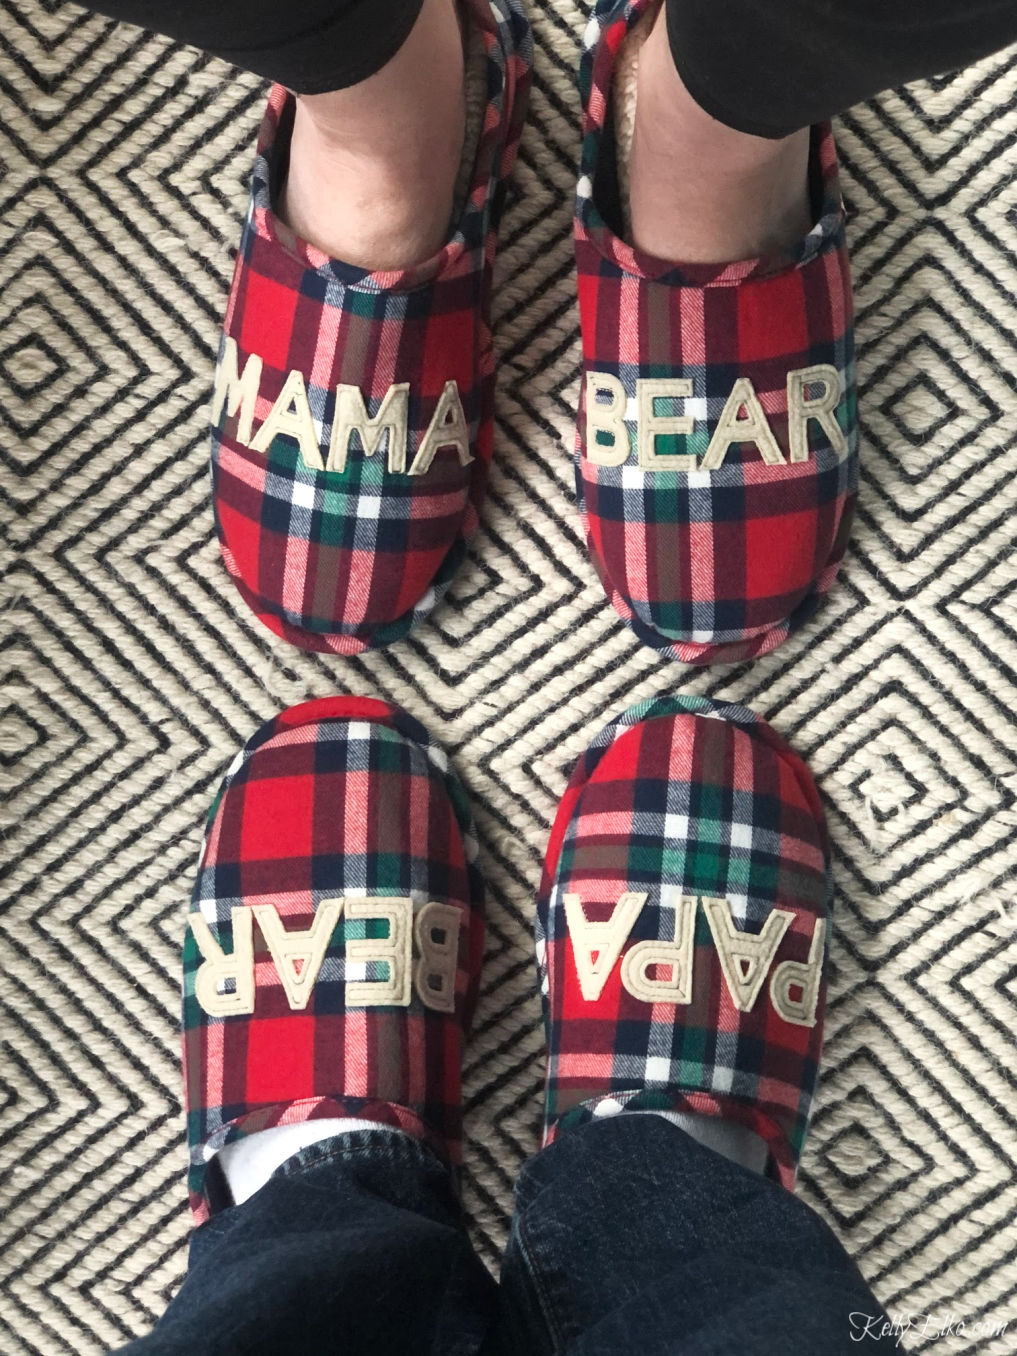 Mama Bear & Papa Bear Slippers! These are adorable kellyelko.com #slippers #giftguide #giftideas #christmasgiftguide #christmasgiftideas #giftsforher #giftsforhim #plaid #kellyelko